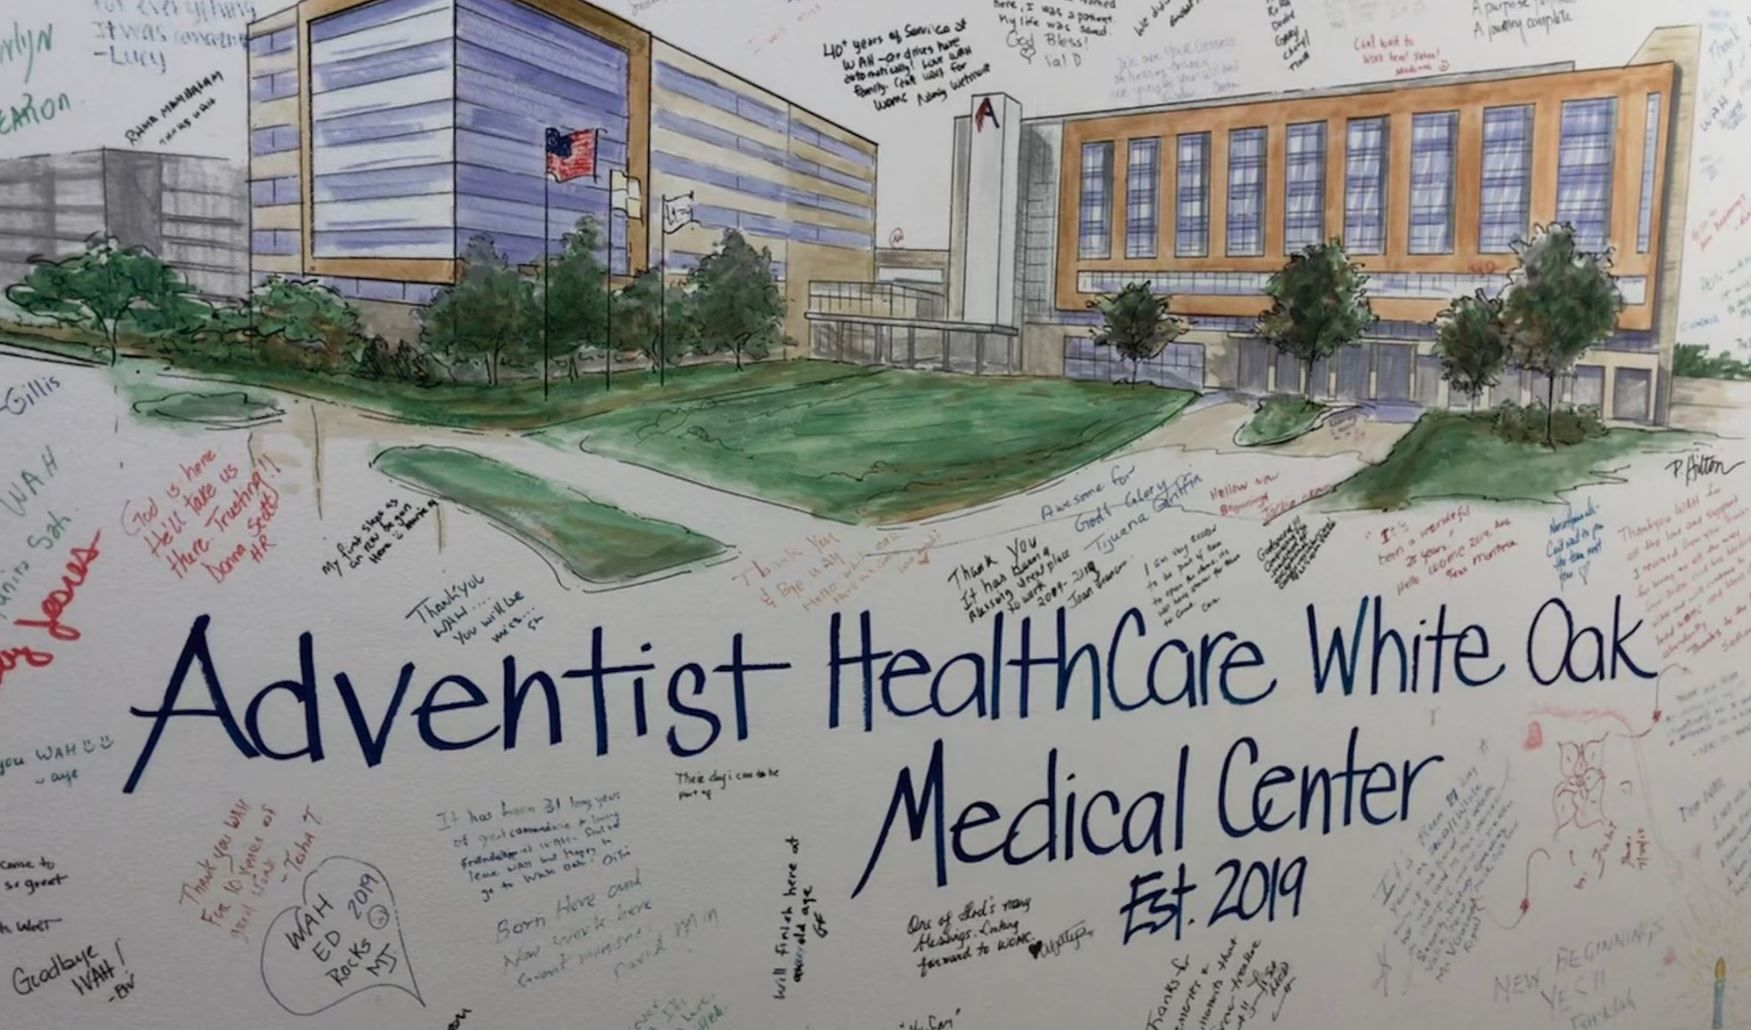 Washington adventist hospital move